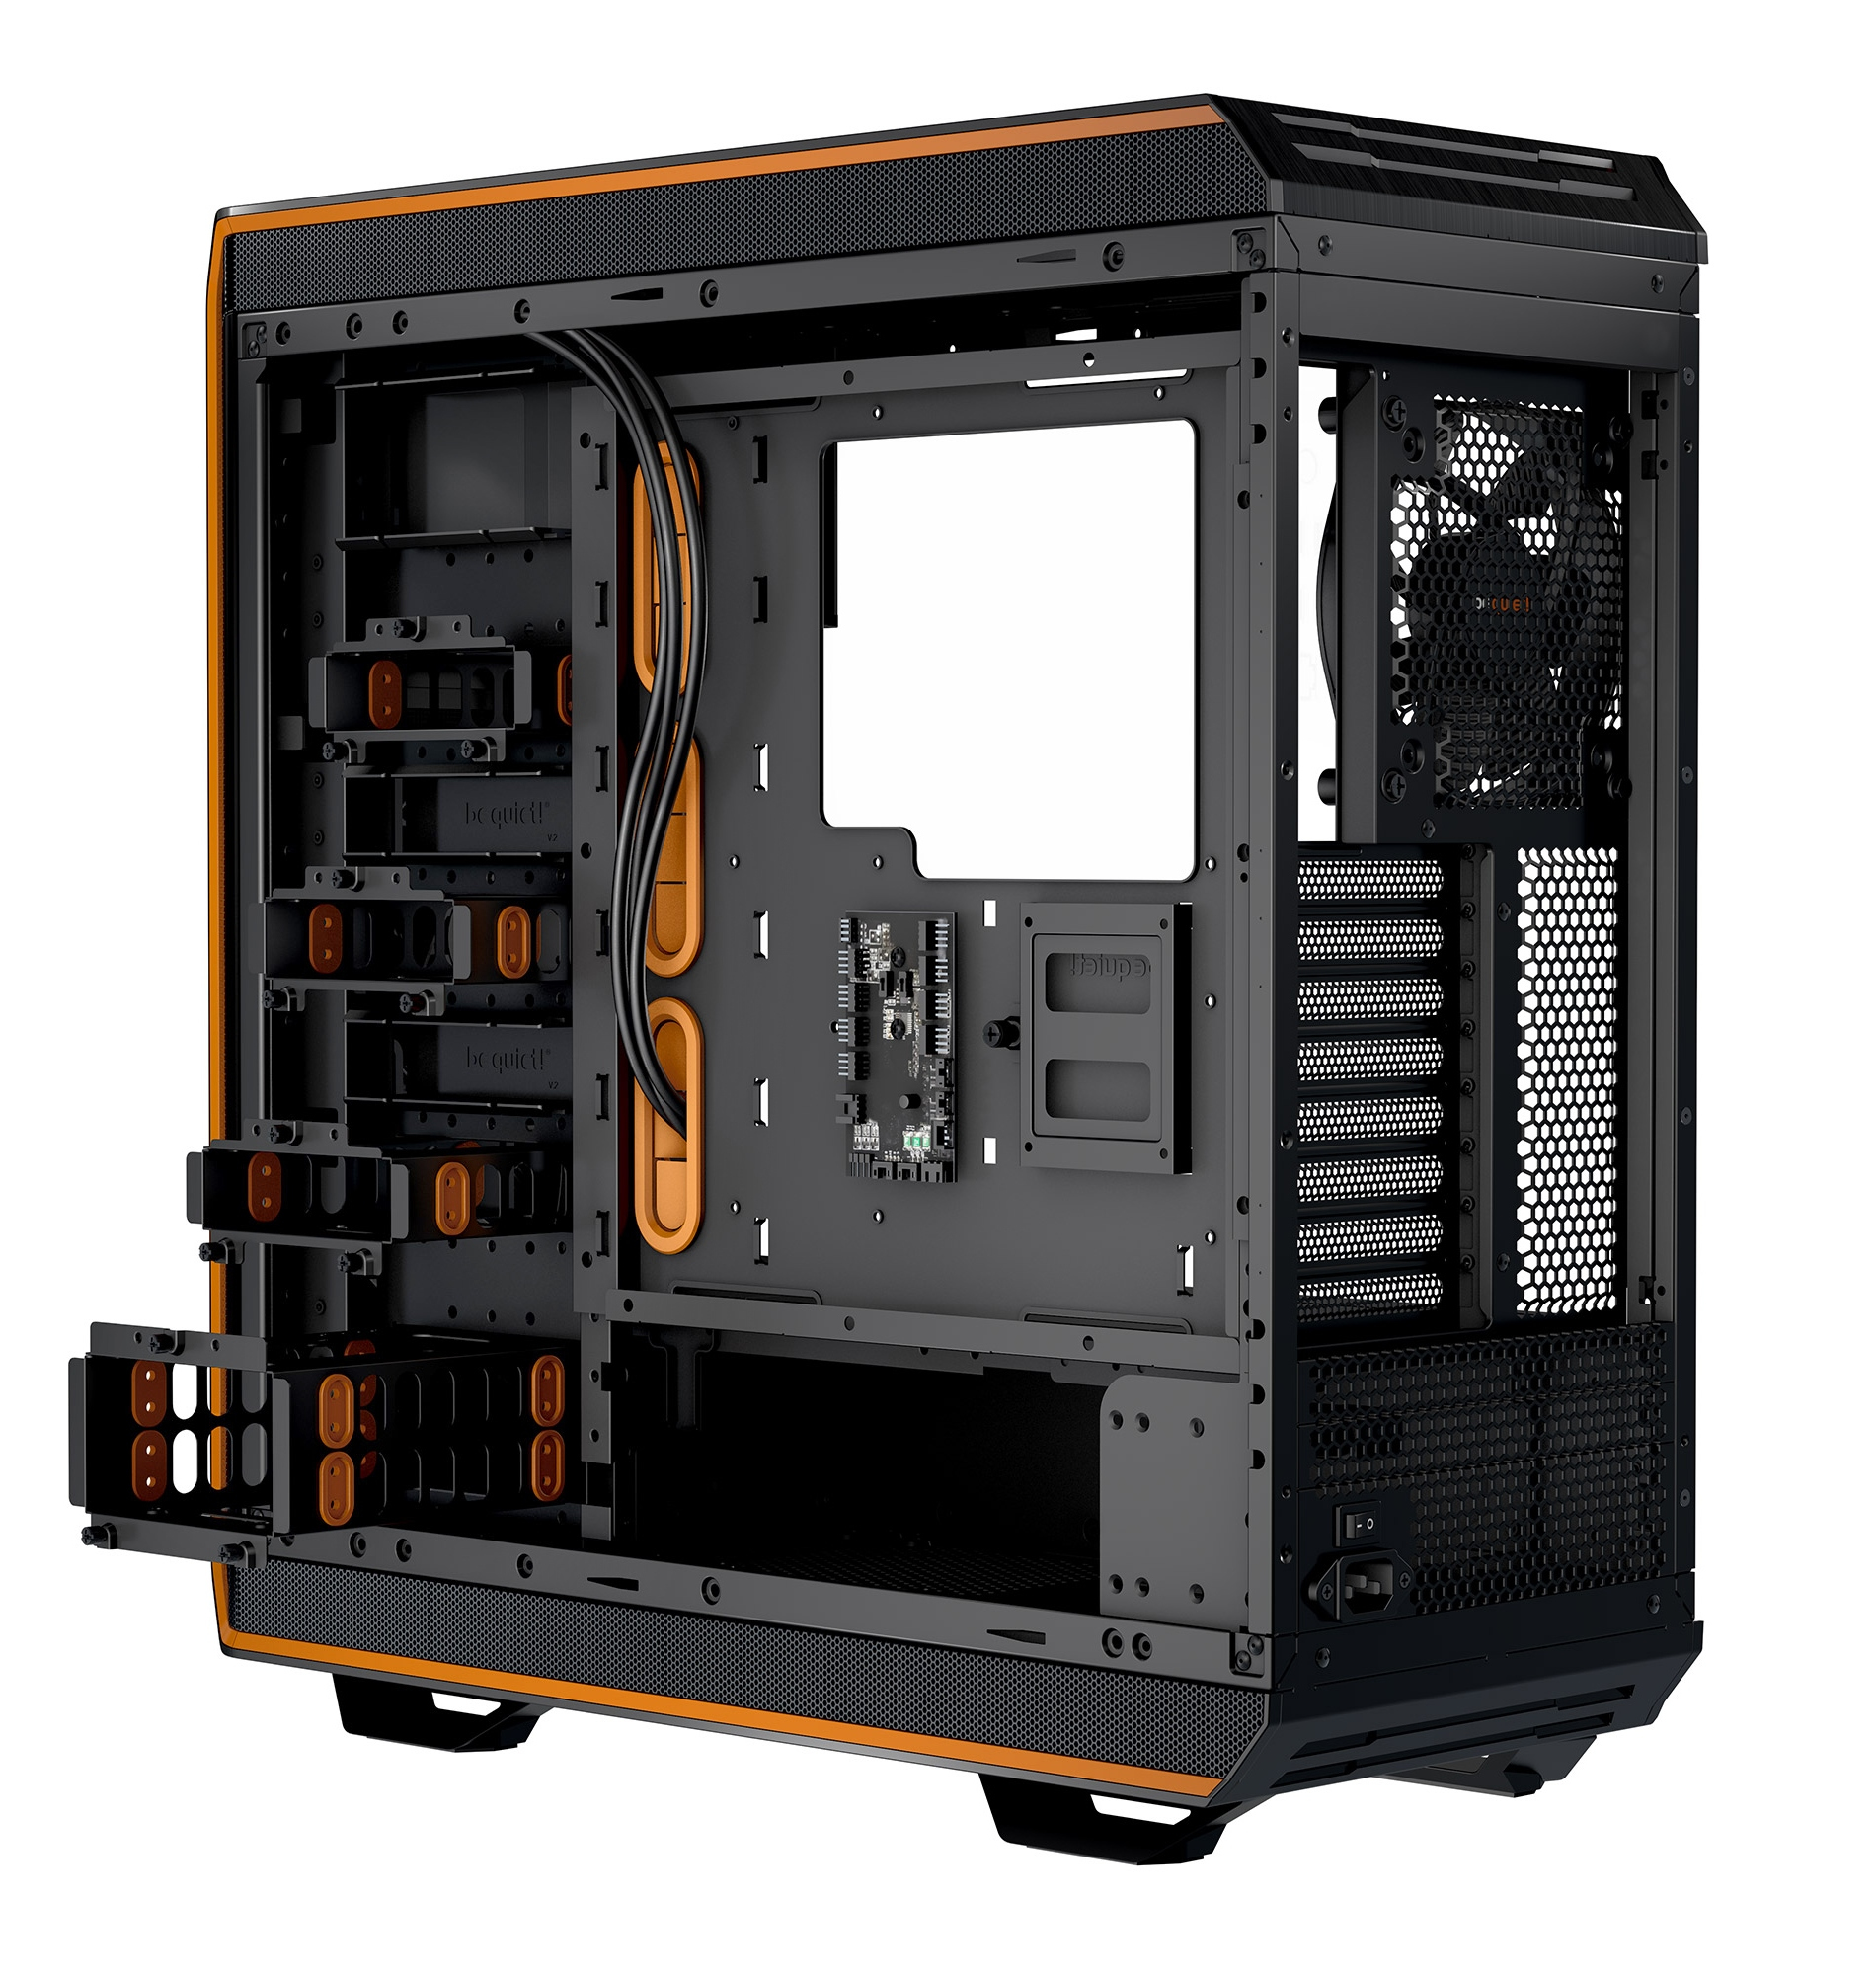 be quiet! Dark Base Pro 900 Window Orange rev.2, 577 x 243 x 585, IO-panel 2x USB 3.0, 1x USB 3.1 Gen2 Type C, HD Audio, 2x 5,25, 5x 3,5, 10x 2,5, inc 3x 140 mm, tripple air channel cooling, Manual fan controller, 4xPWM, 4x3pin, QI Charging option,